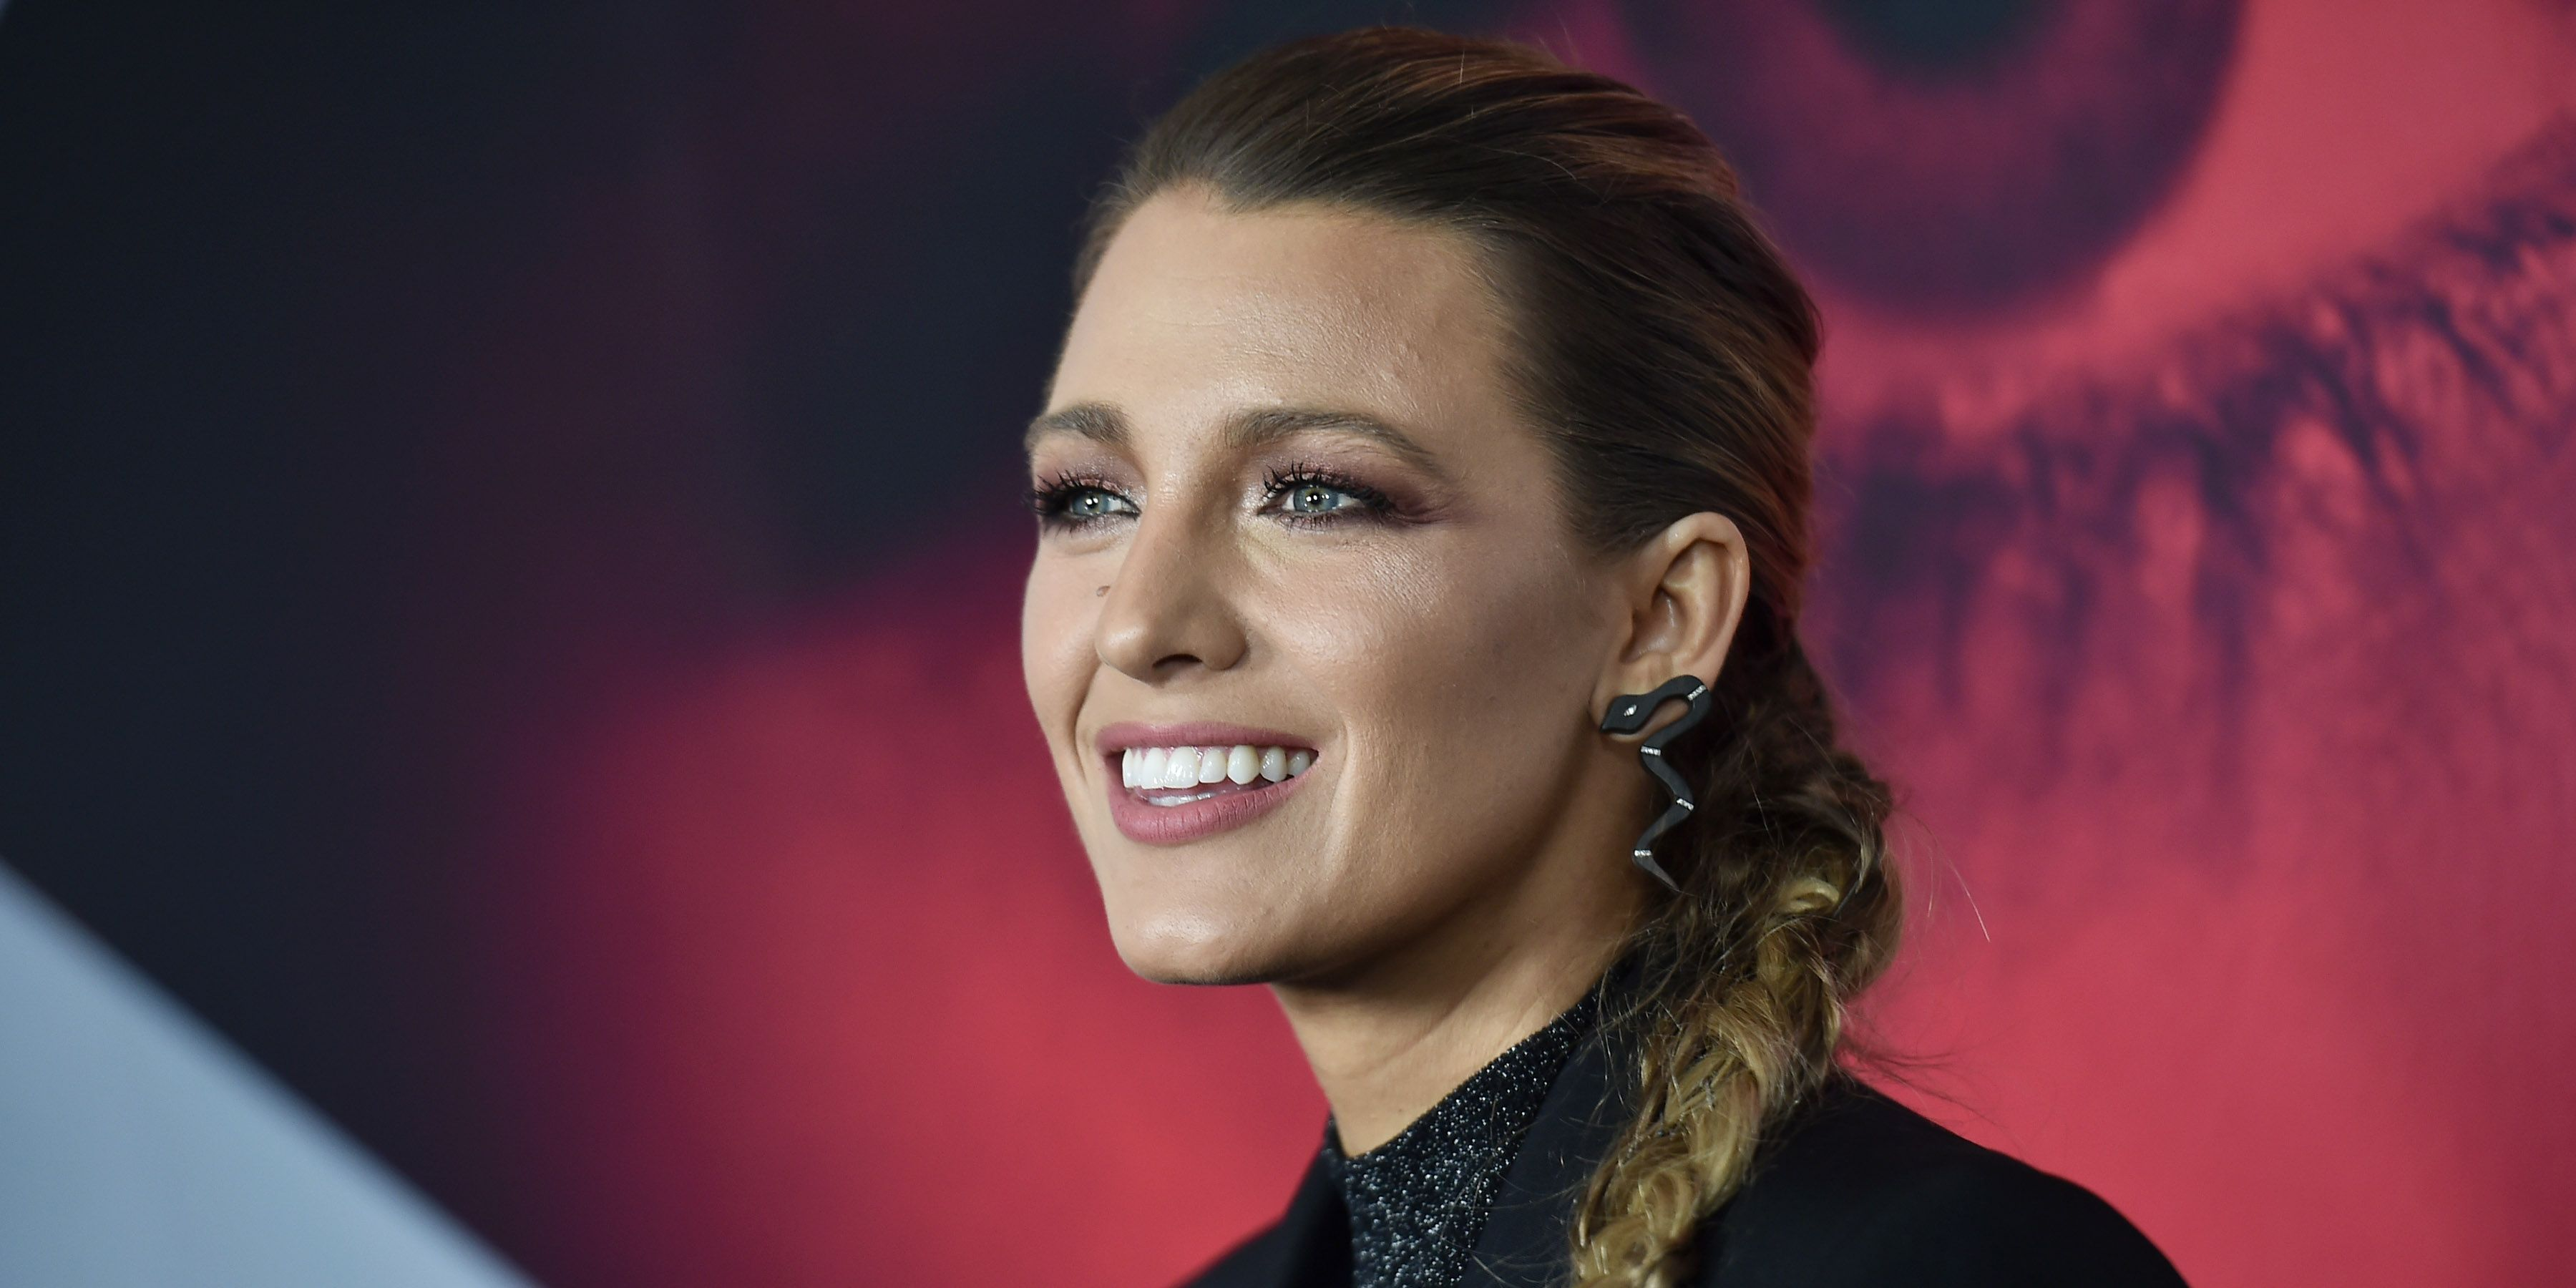 Blake Lively Is Teaming Up With Amazon to Produce a Scripted Fashion Series